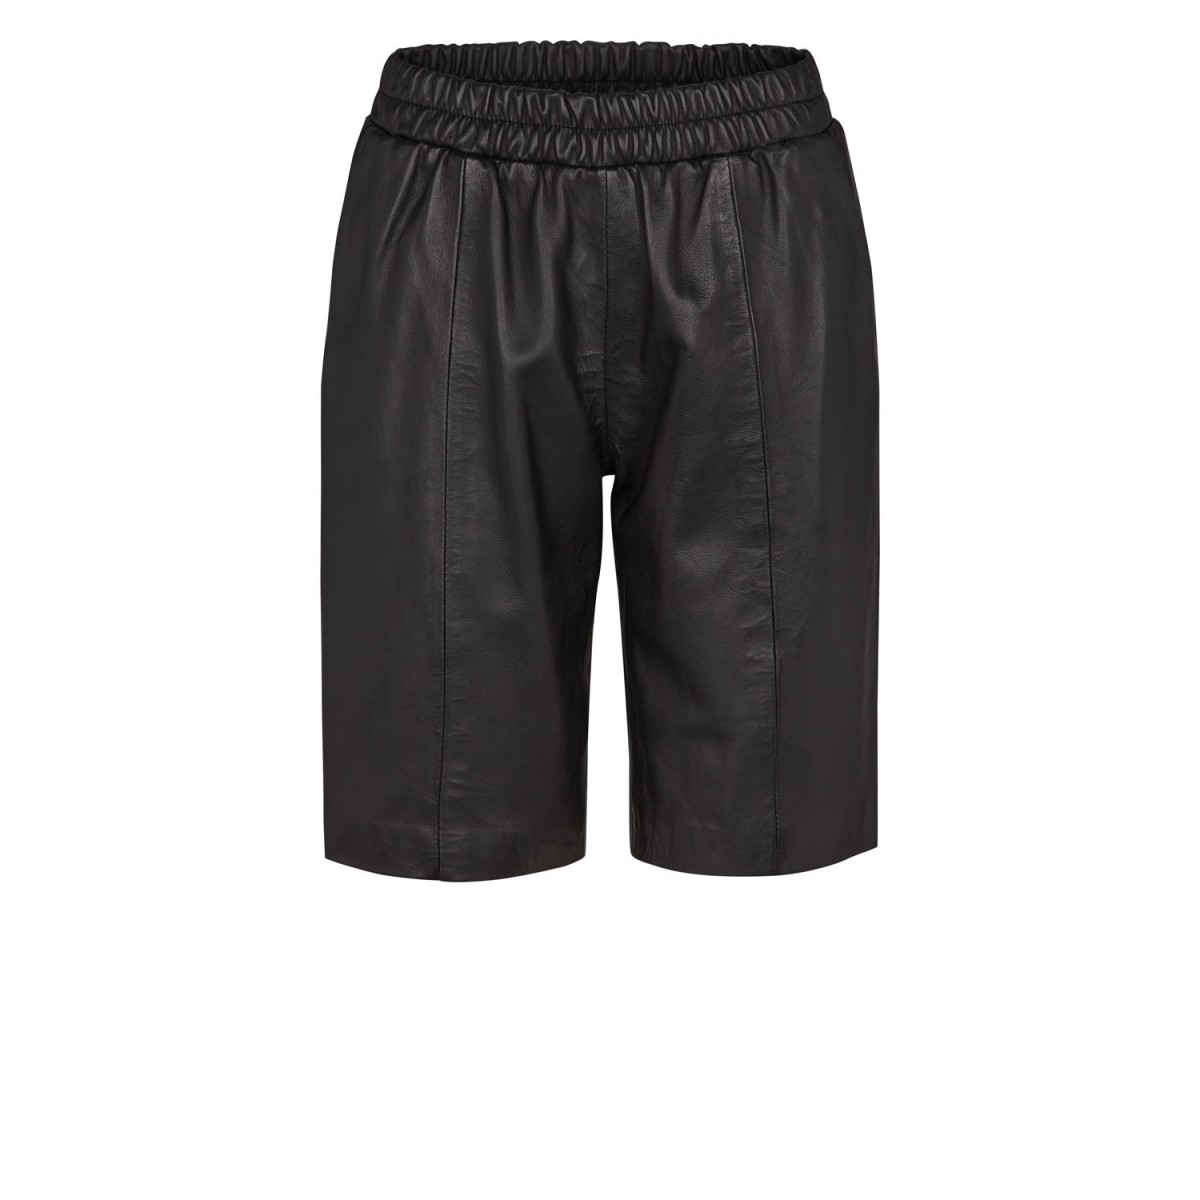 Moliin 6018 Camille Shorts Leather Black-31